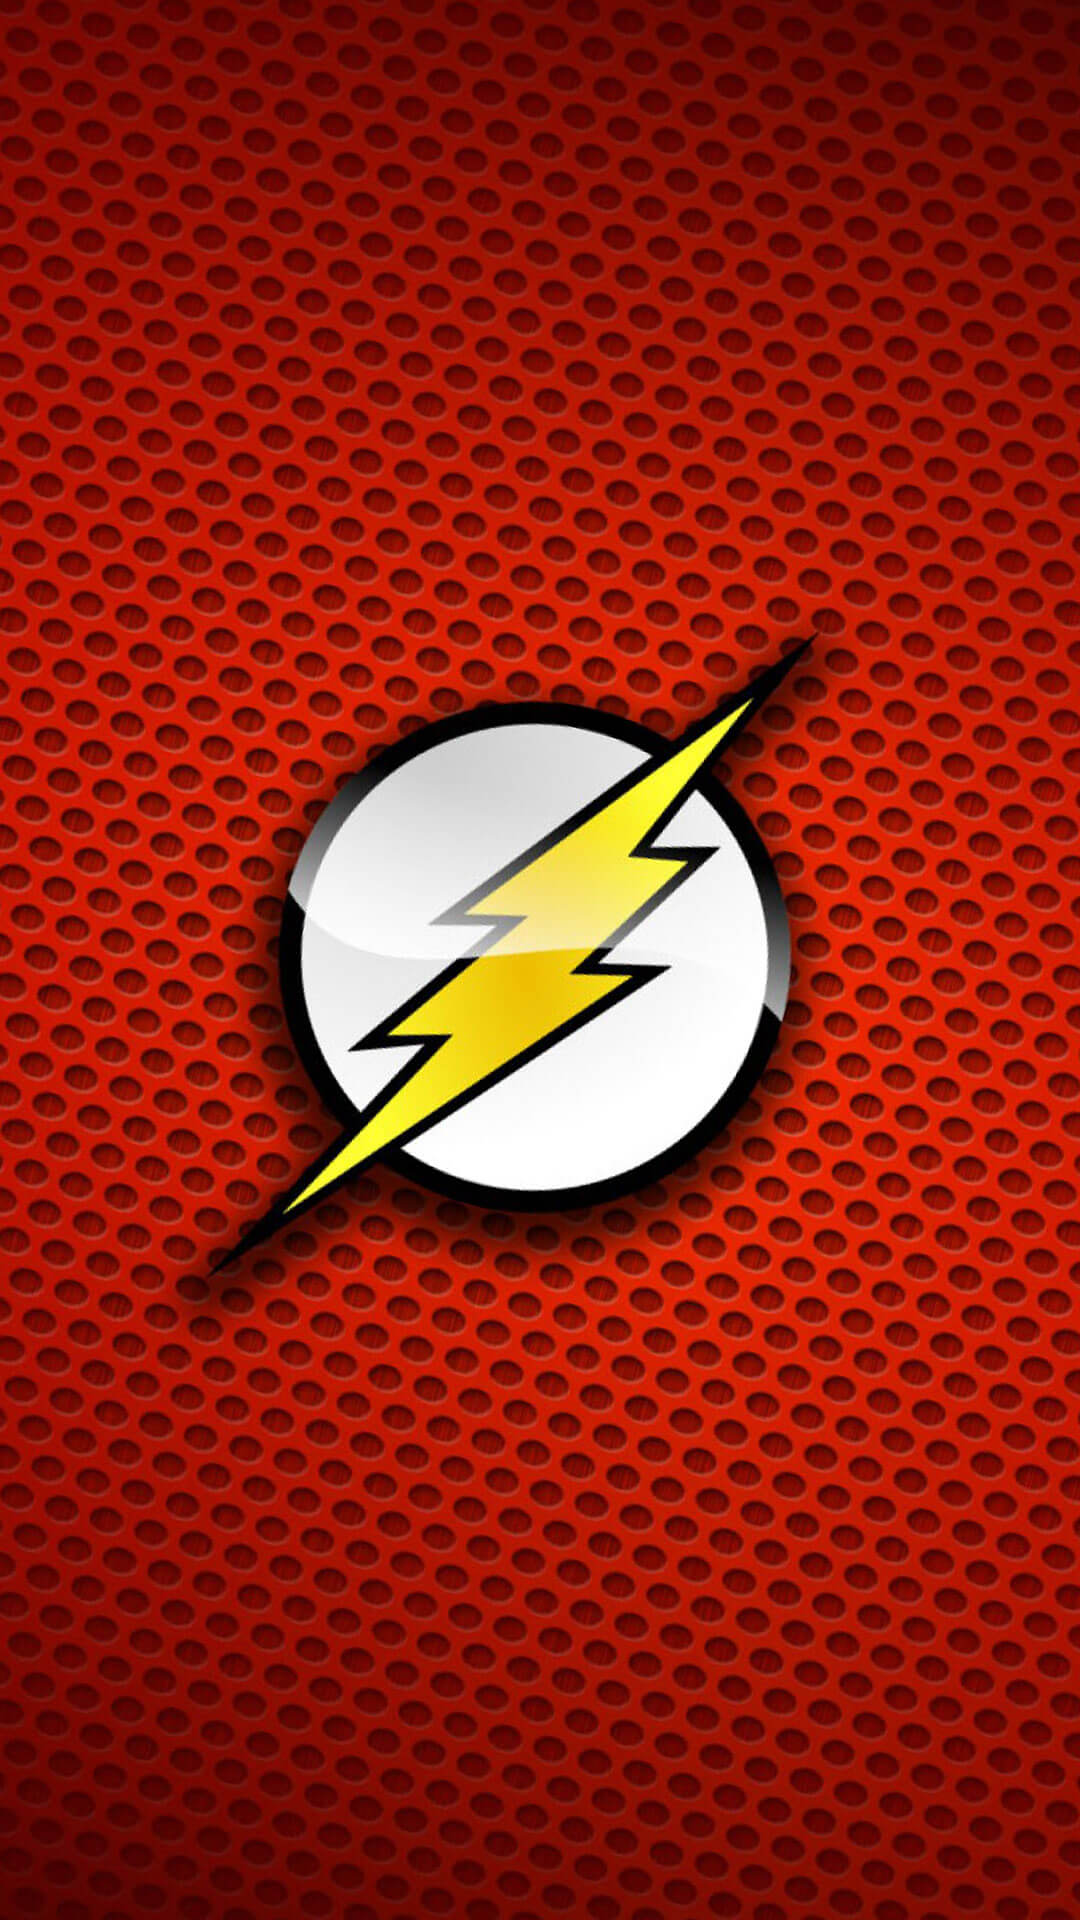 the flash phone wallpaper - wallpapersafari